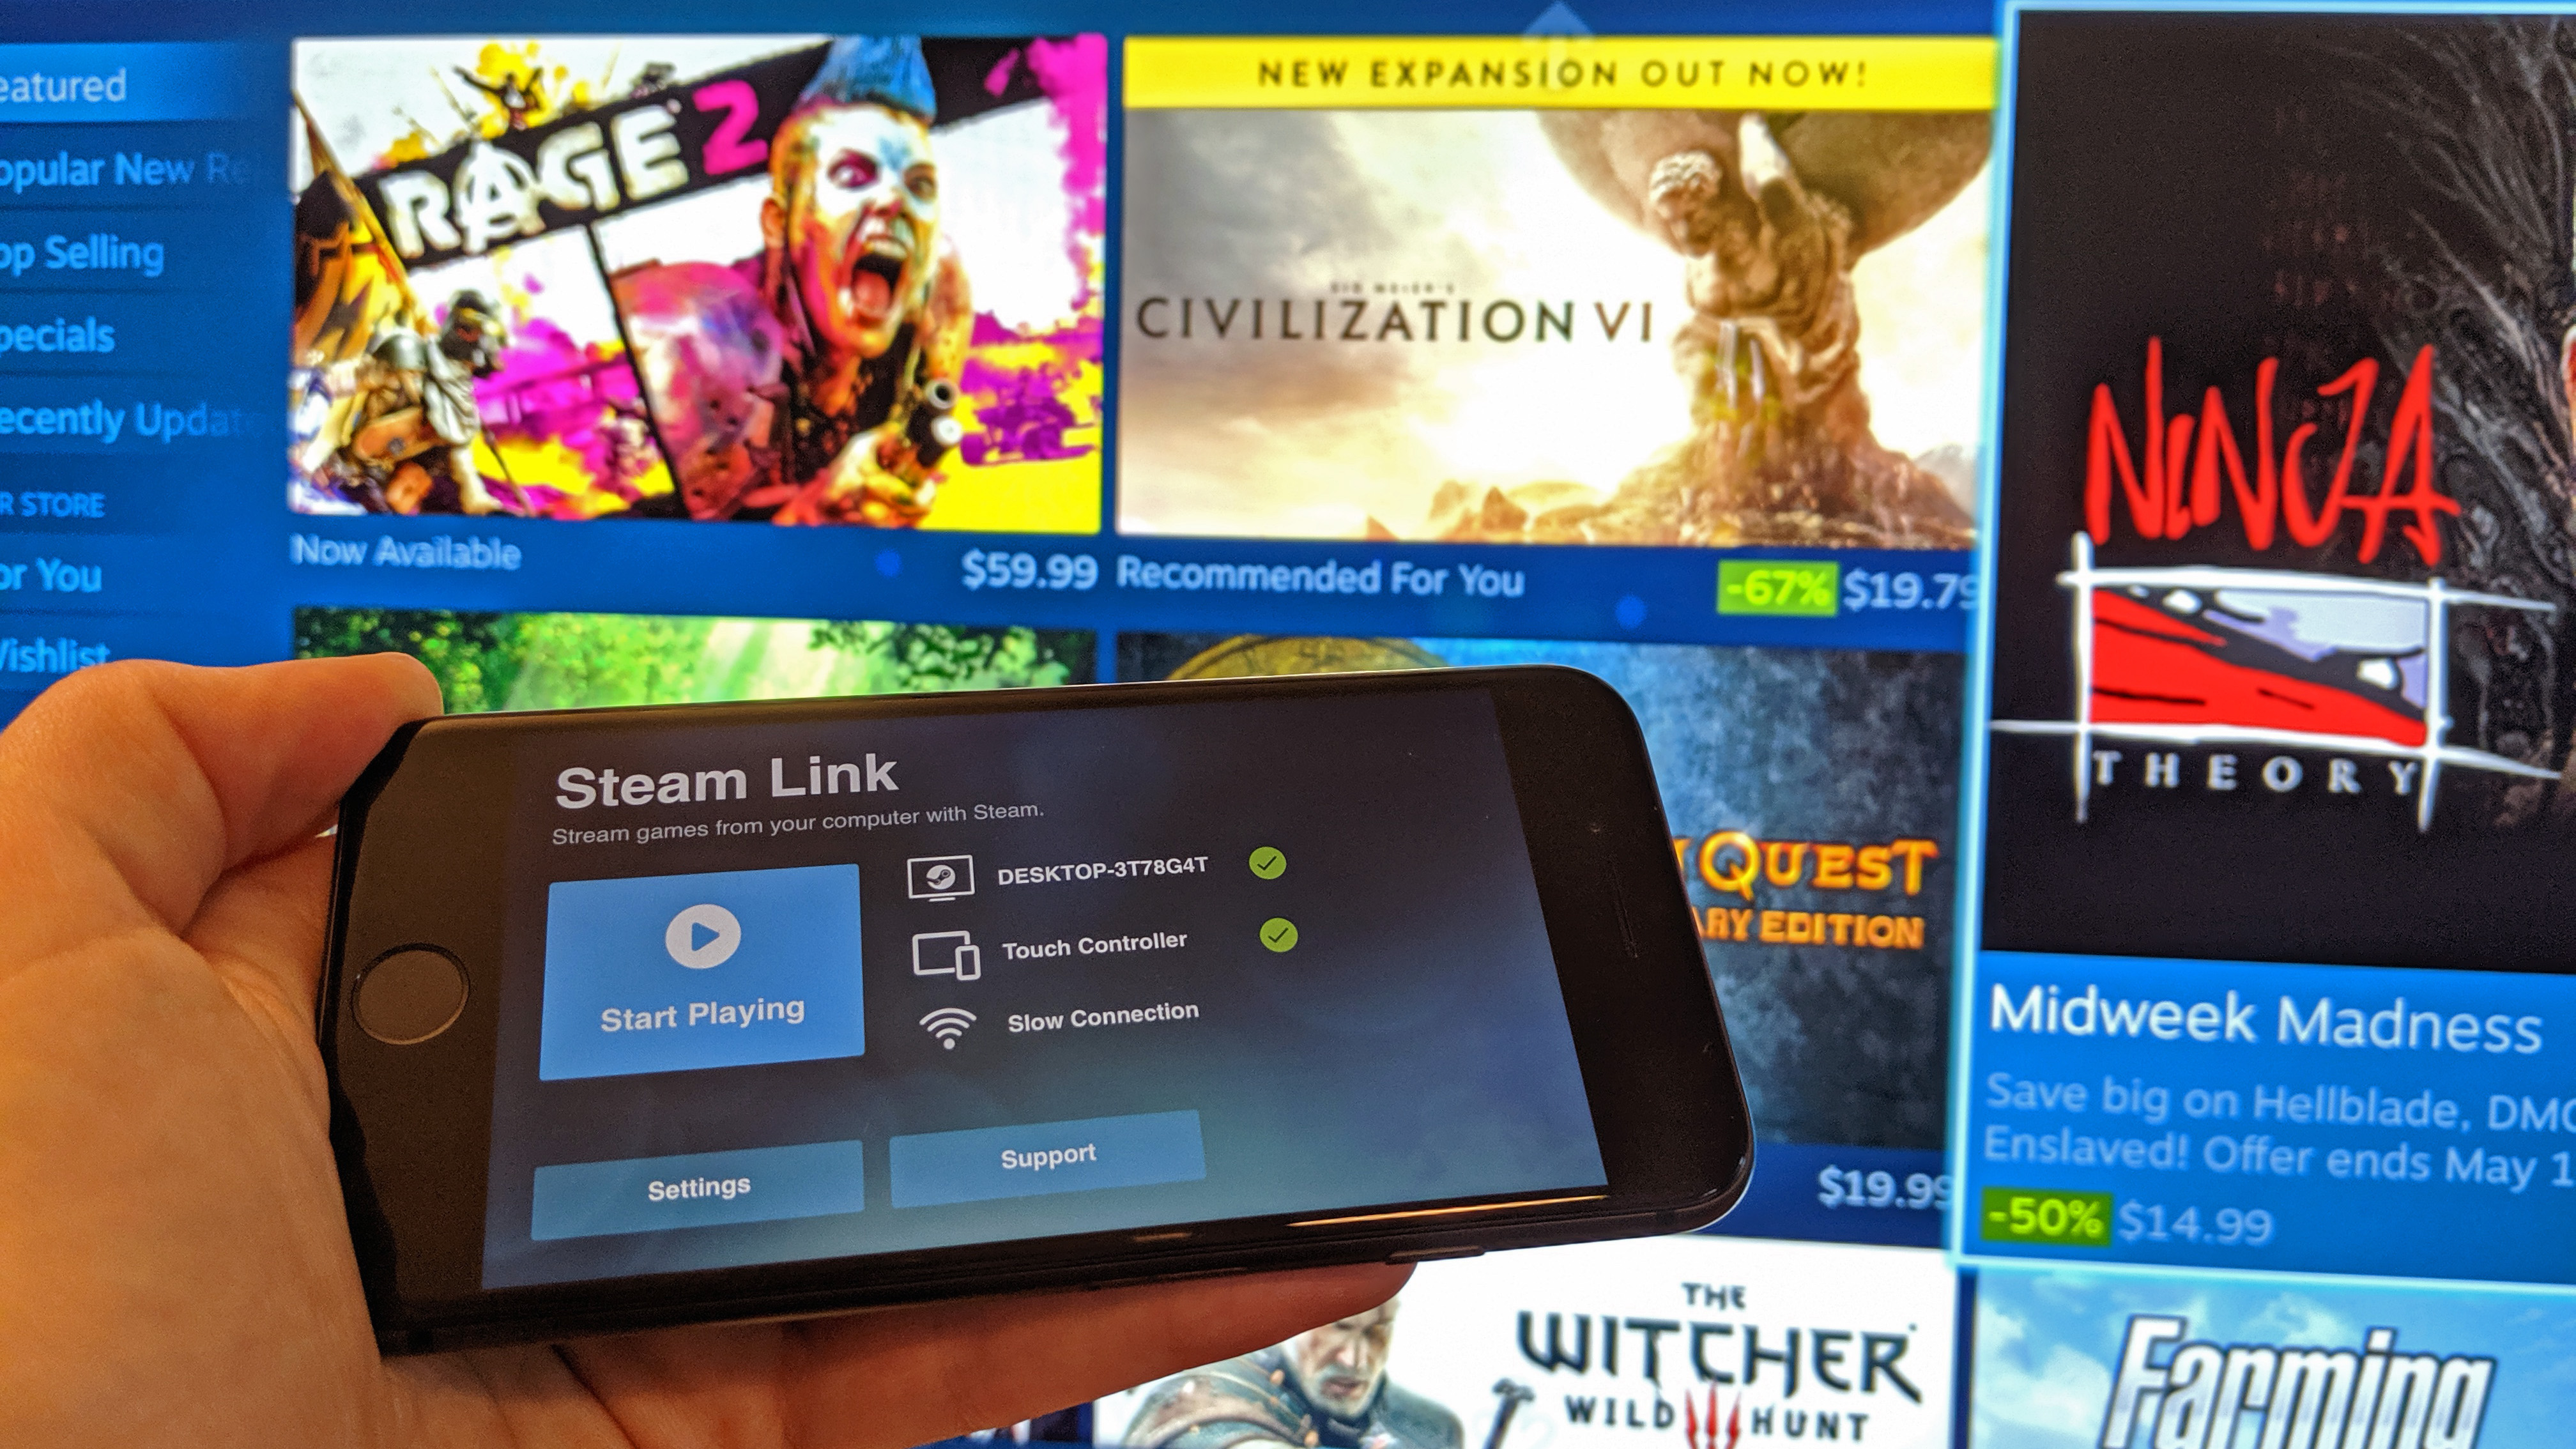 Steam Link is now available for iOS, a year after its